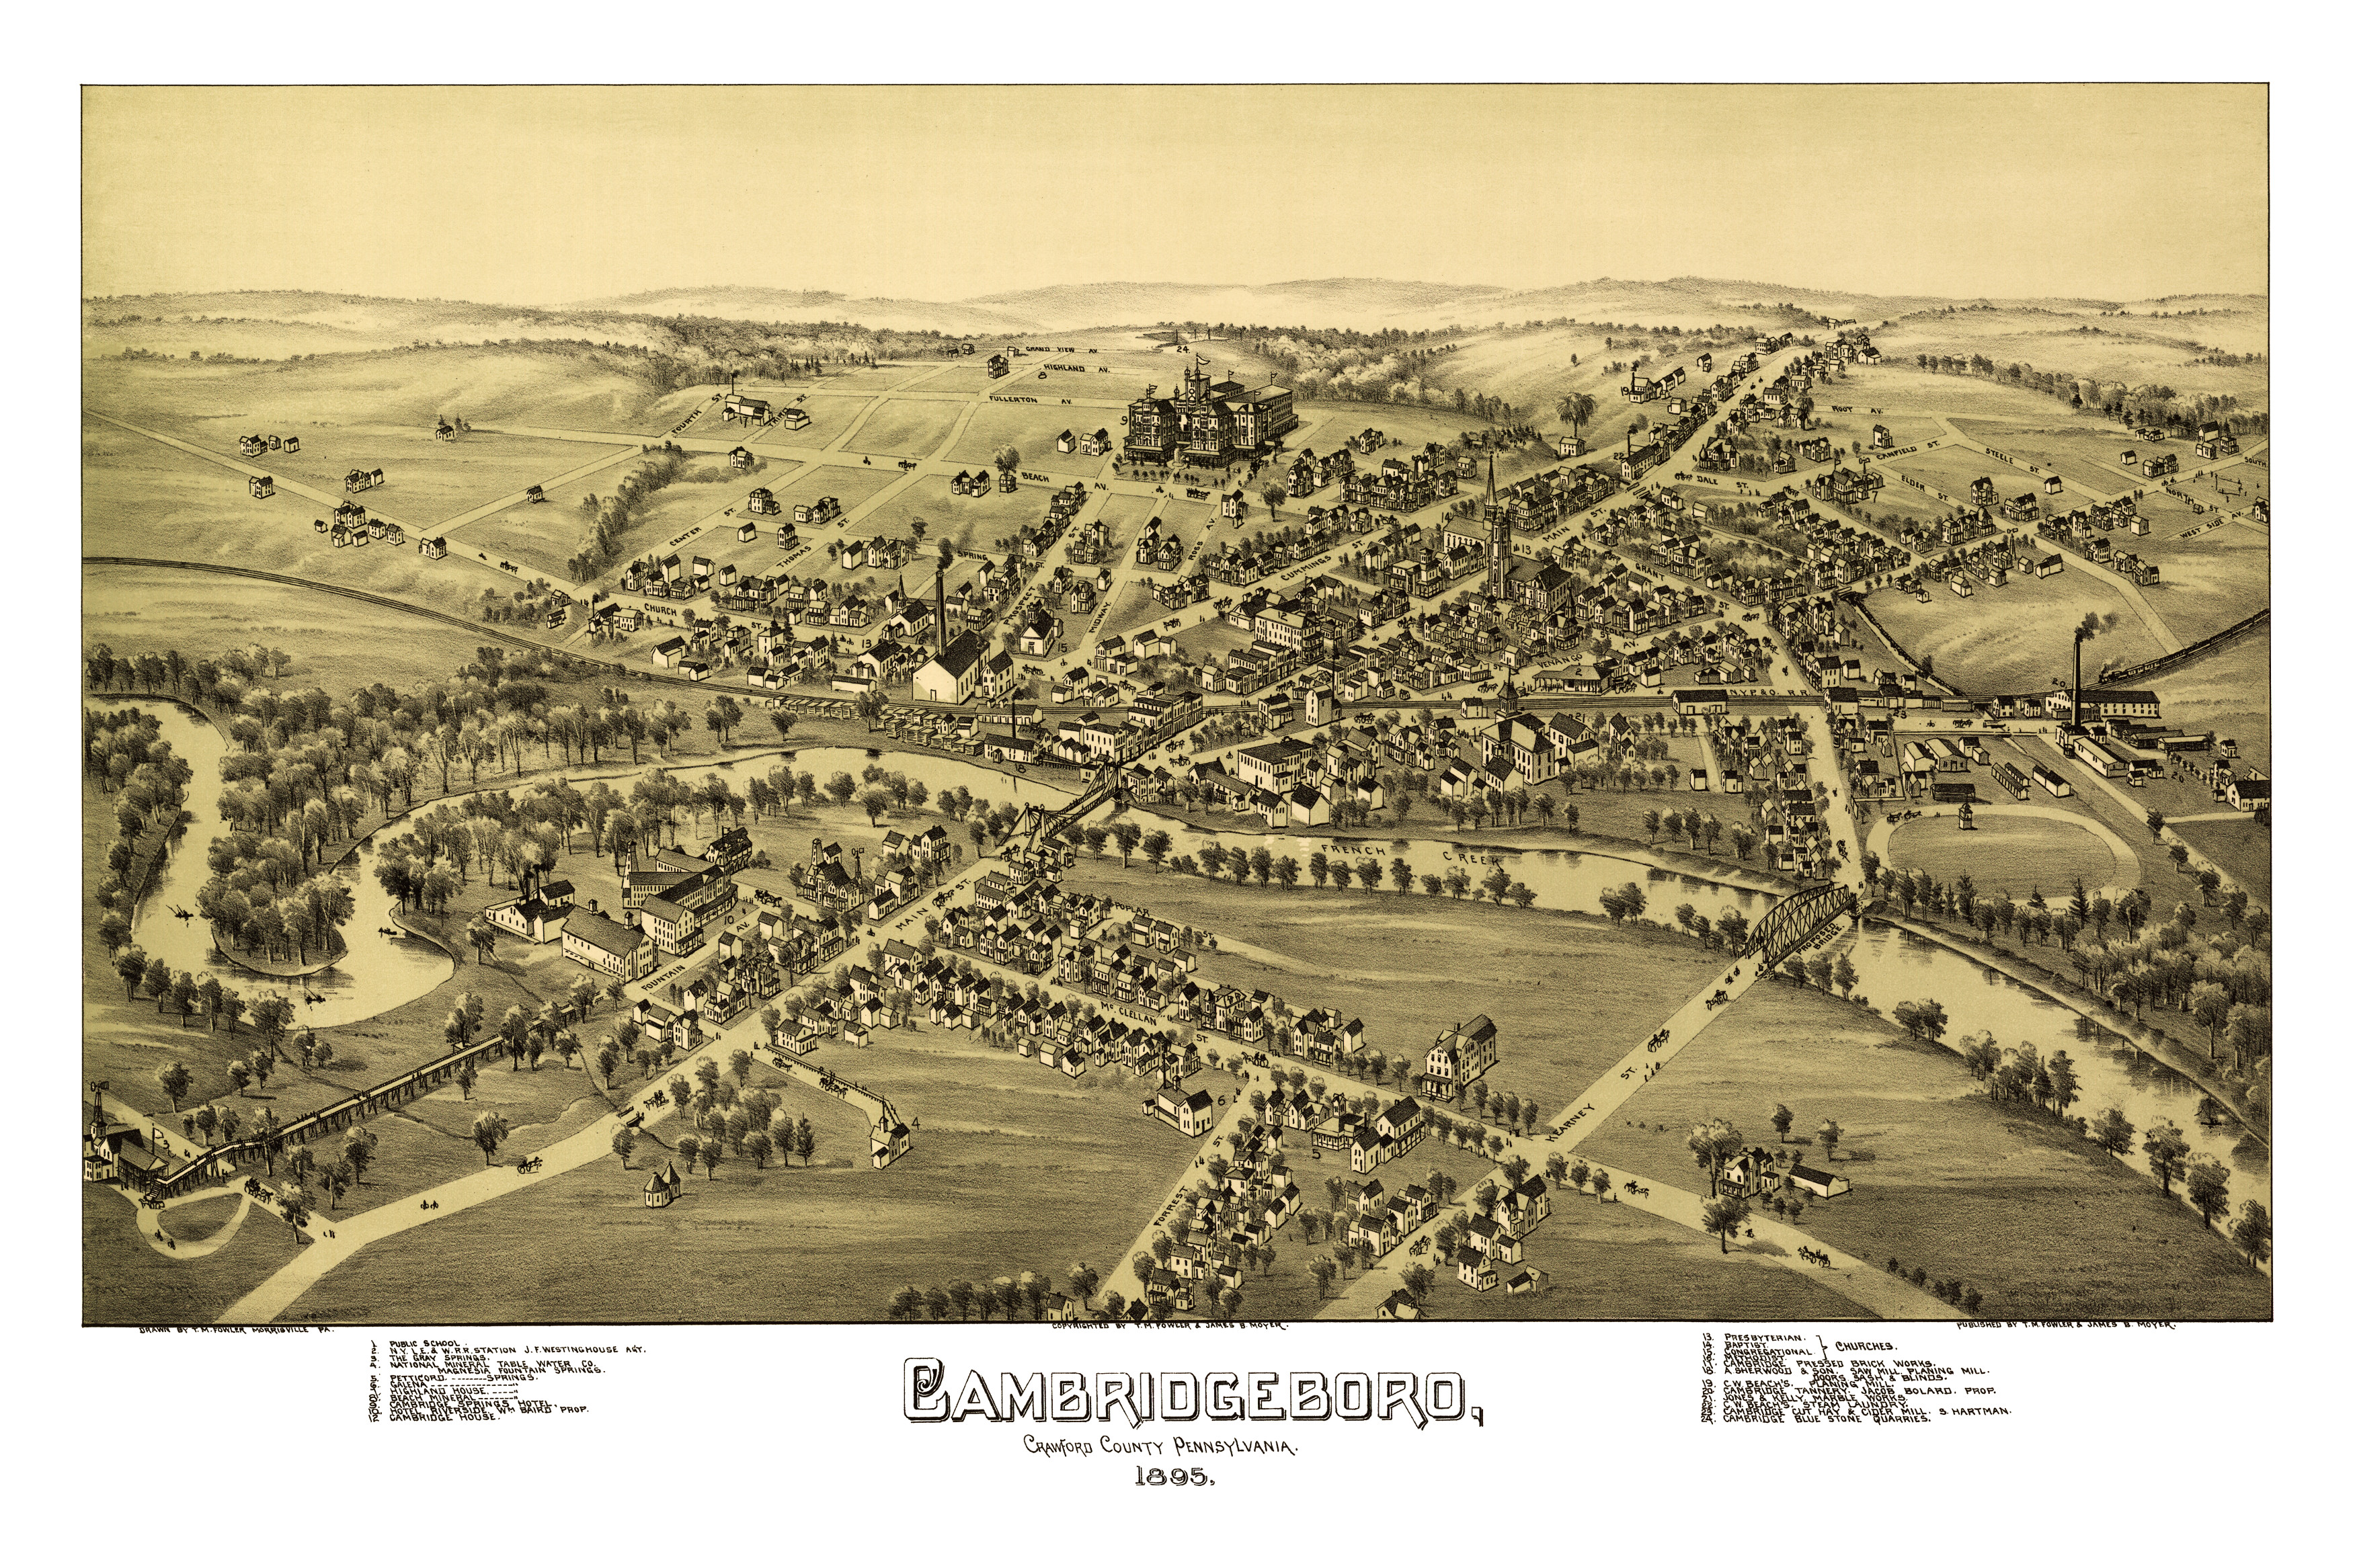 Old Map Shows Birds Eye View Of Cambridgeboro PA In KNOWOL - The old map company